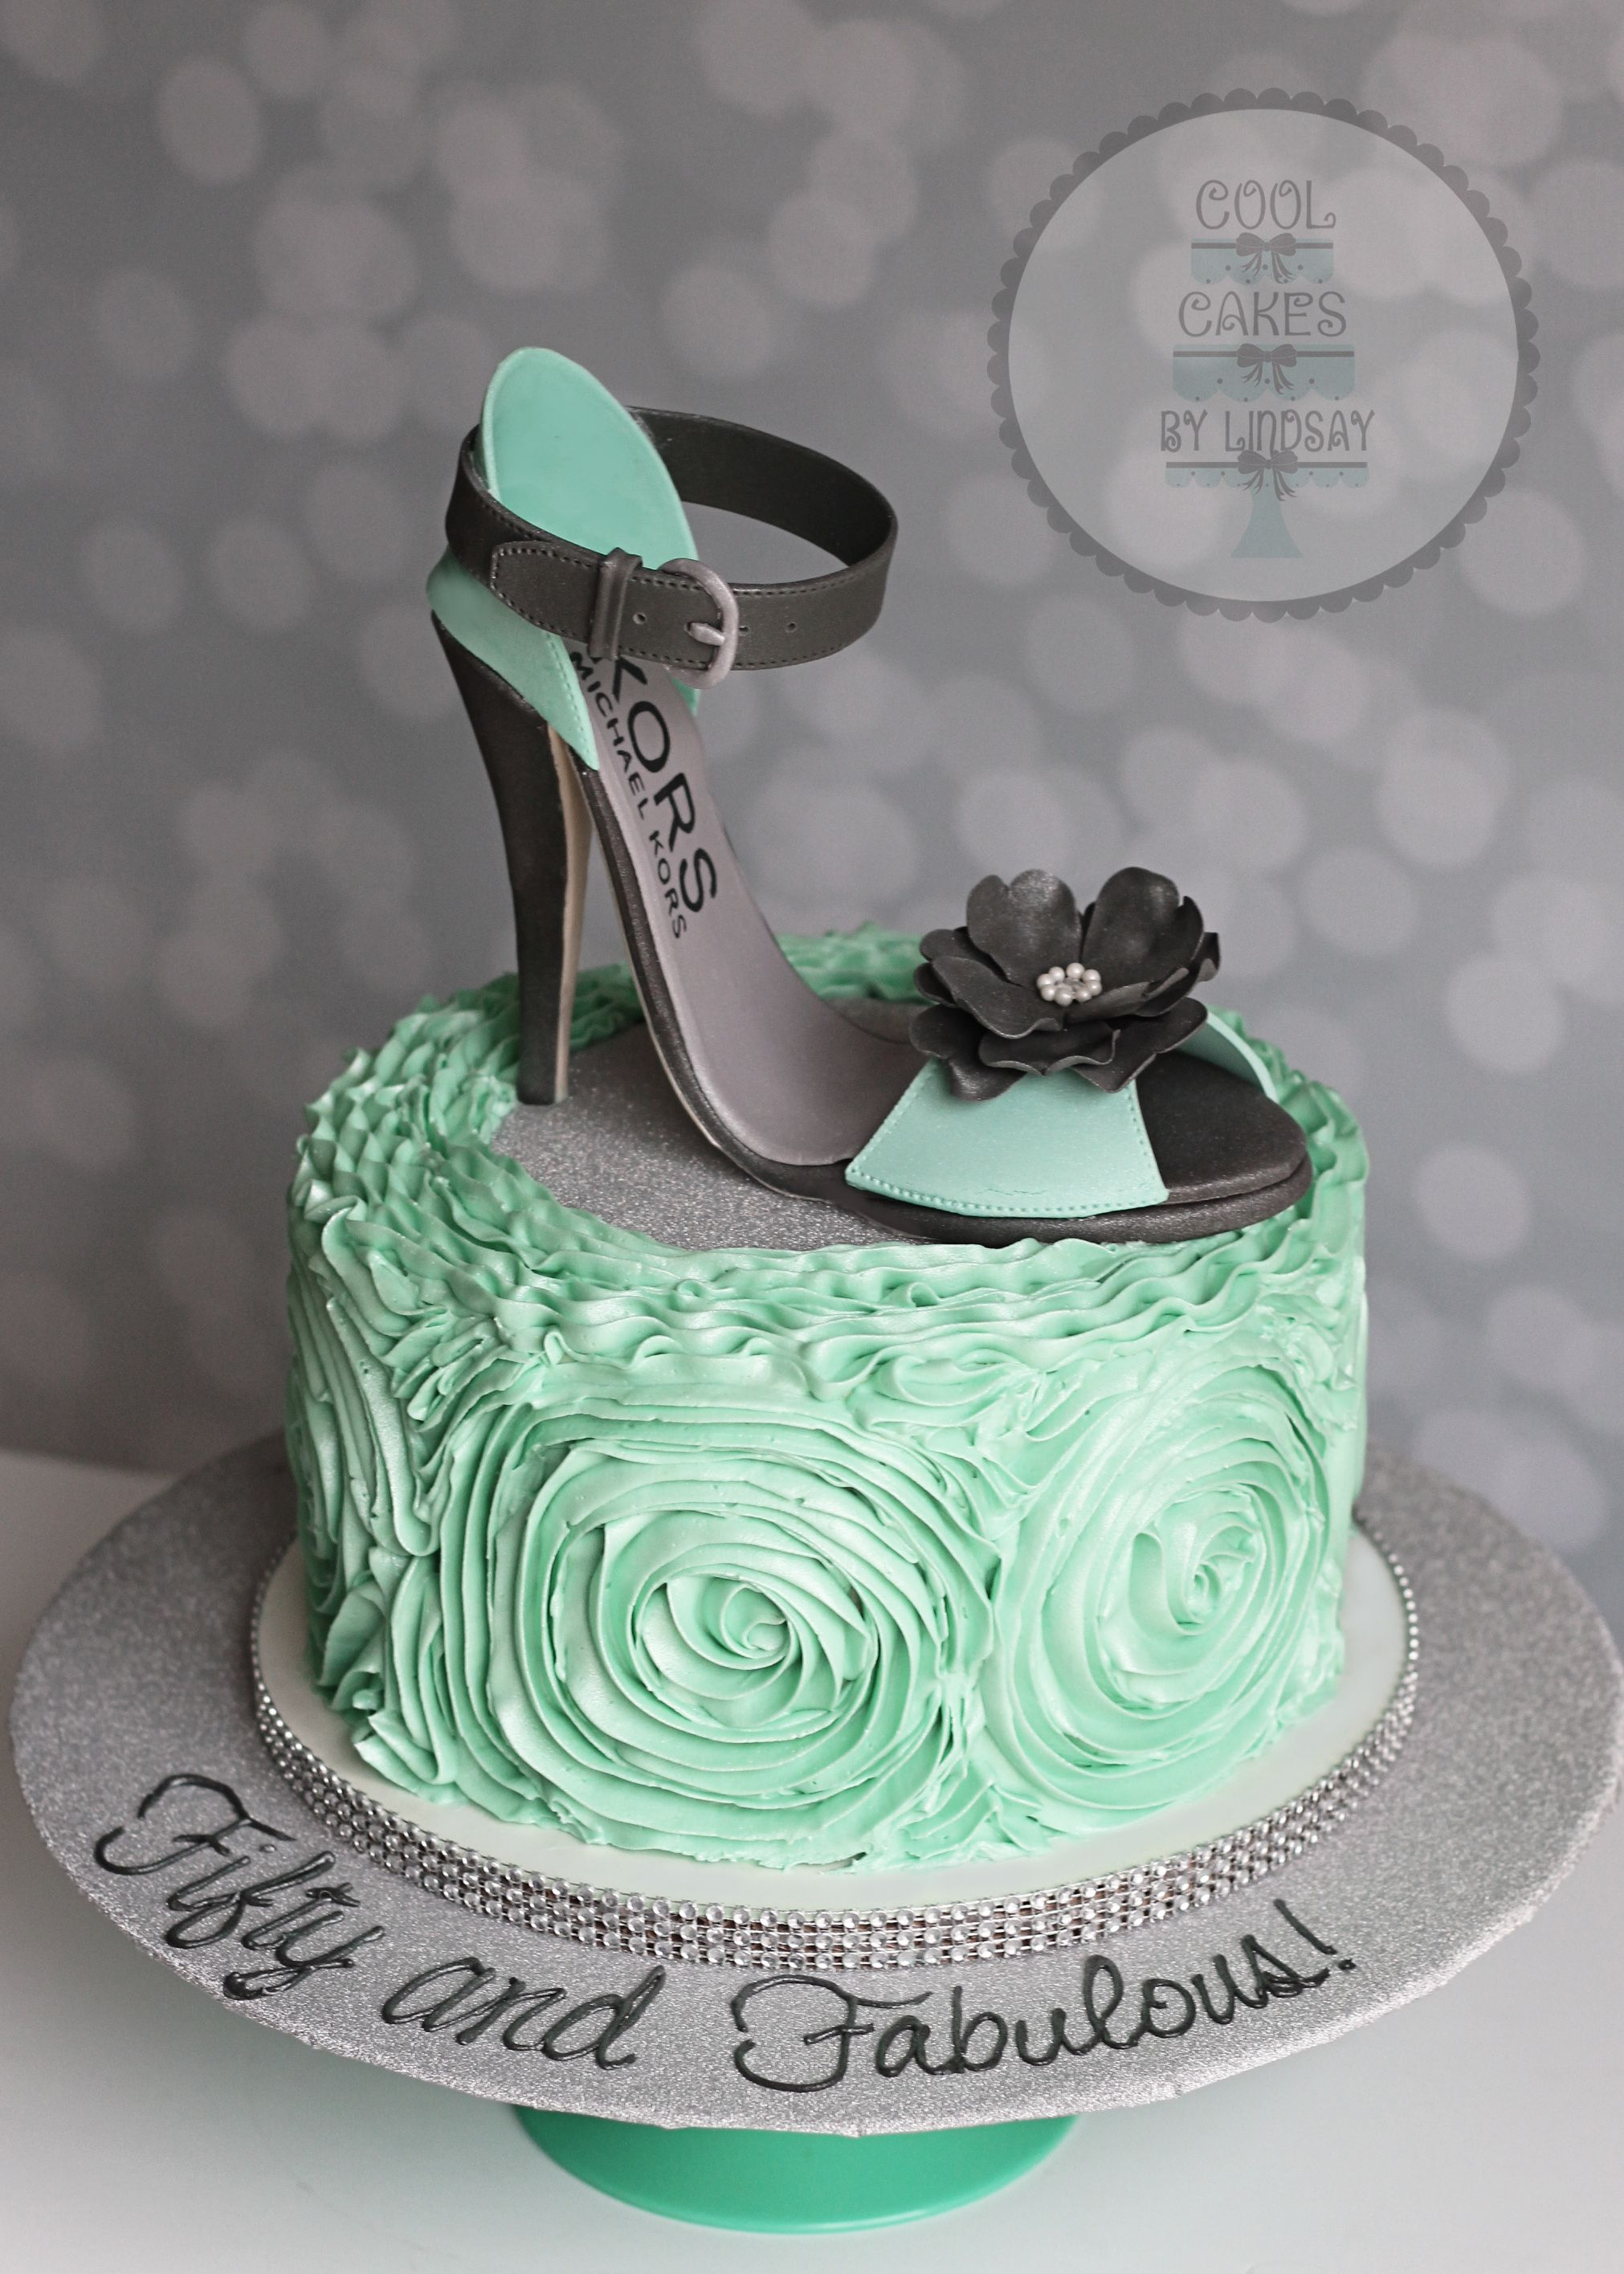 Michael Kors Mk Stiletto Shoe Cake Edible Fondant High